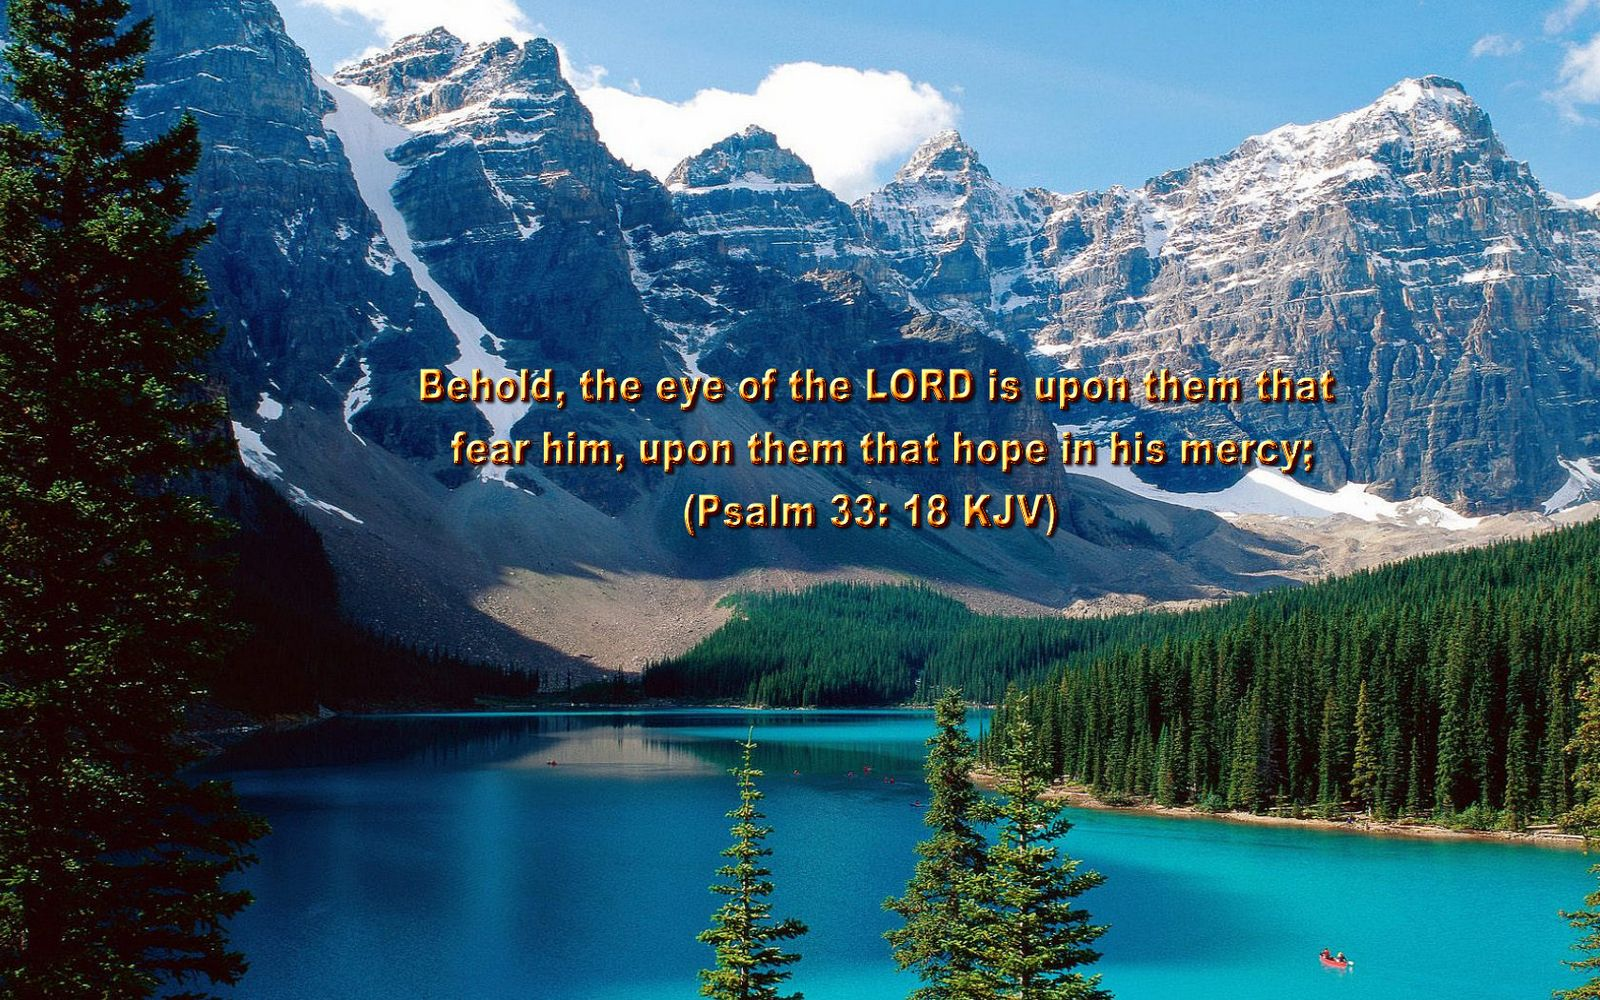 inspirational bible quote wallpapers bible verse for your desktop 1600x1000